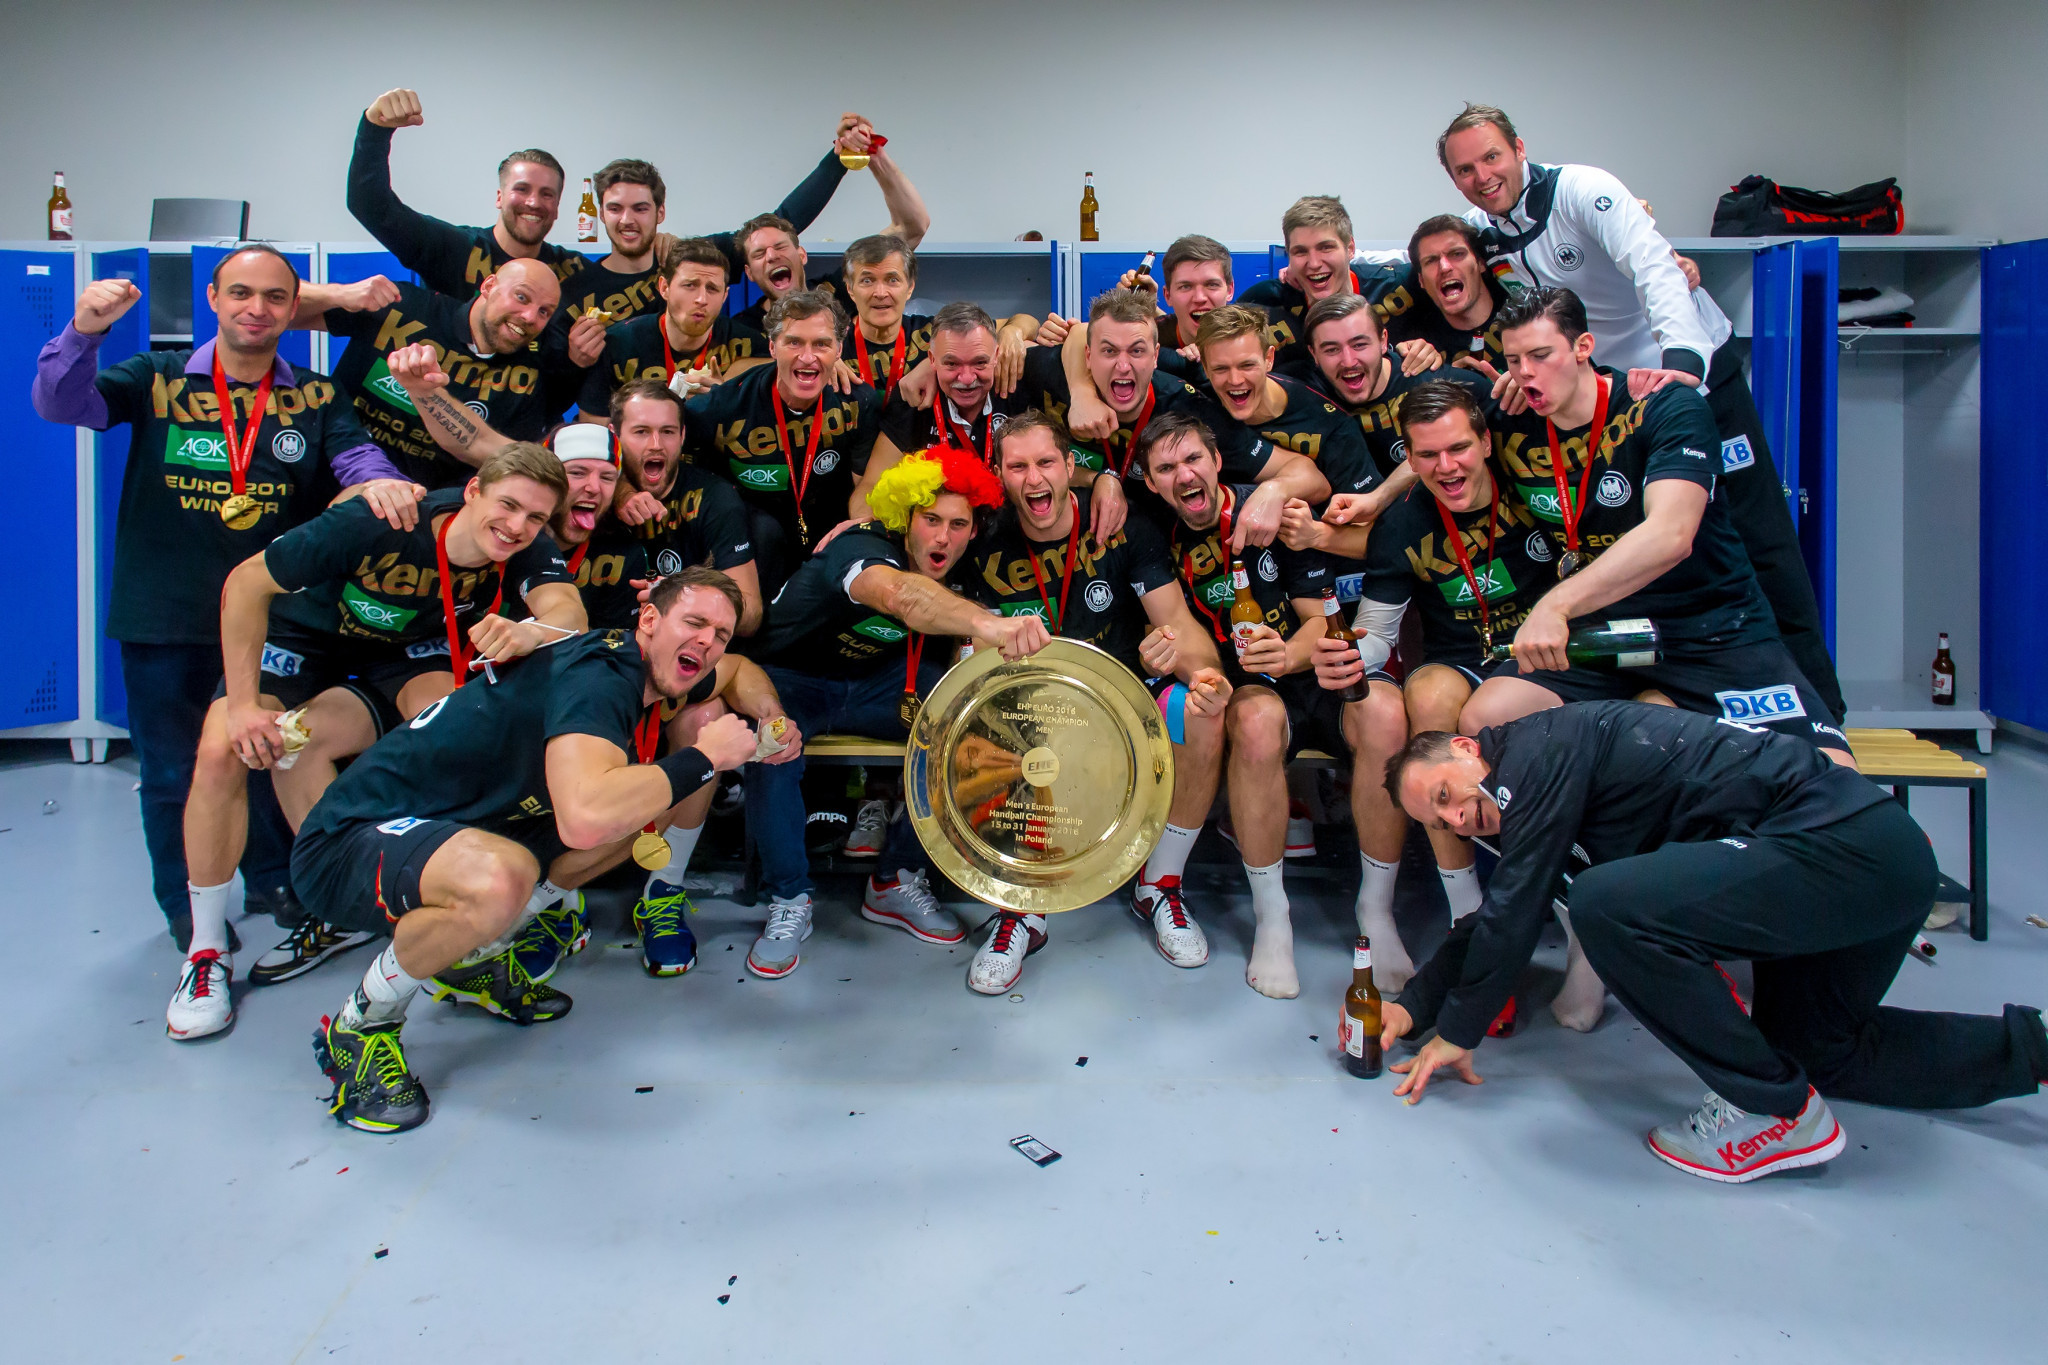 Germany vying to defend European Men's Handball Championship title in Croatia